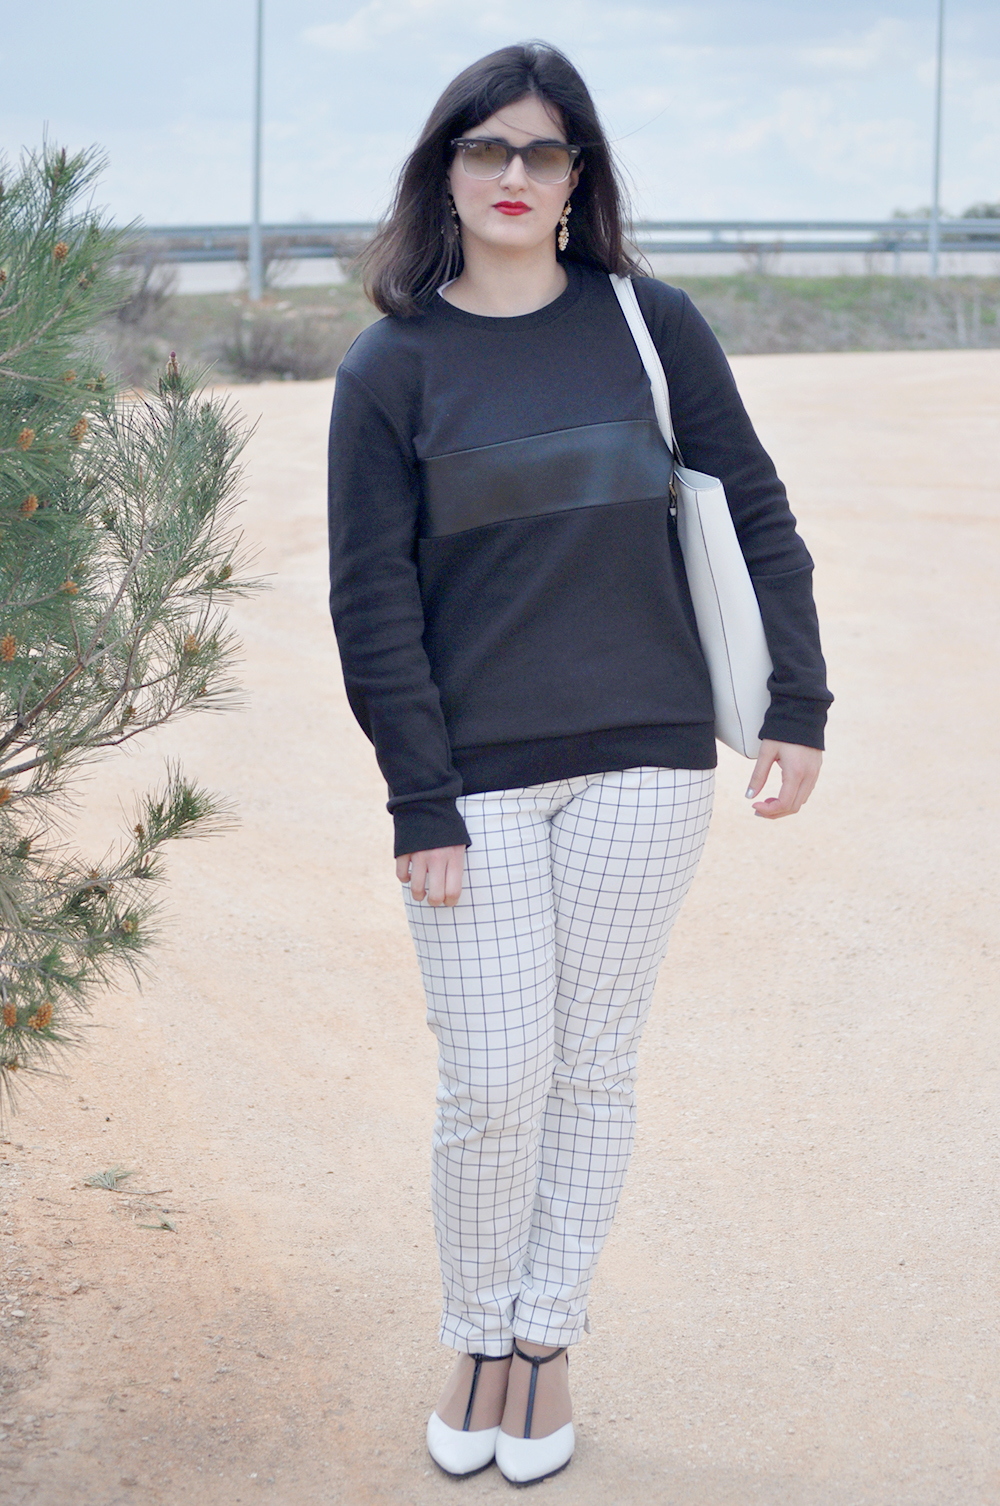 something fashion valencia blogger spain, extremadura merida palacio congresos nieto sobejano, black and white outfit square pants, short hair brunette fblogger, traditional earrings caceres hispanitas shoes, michael kors white bag COS sweatshirt